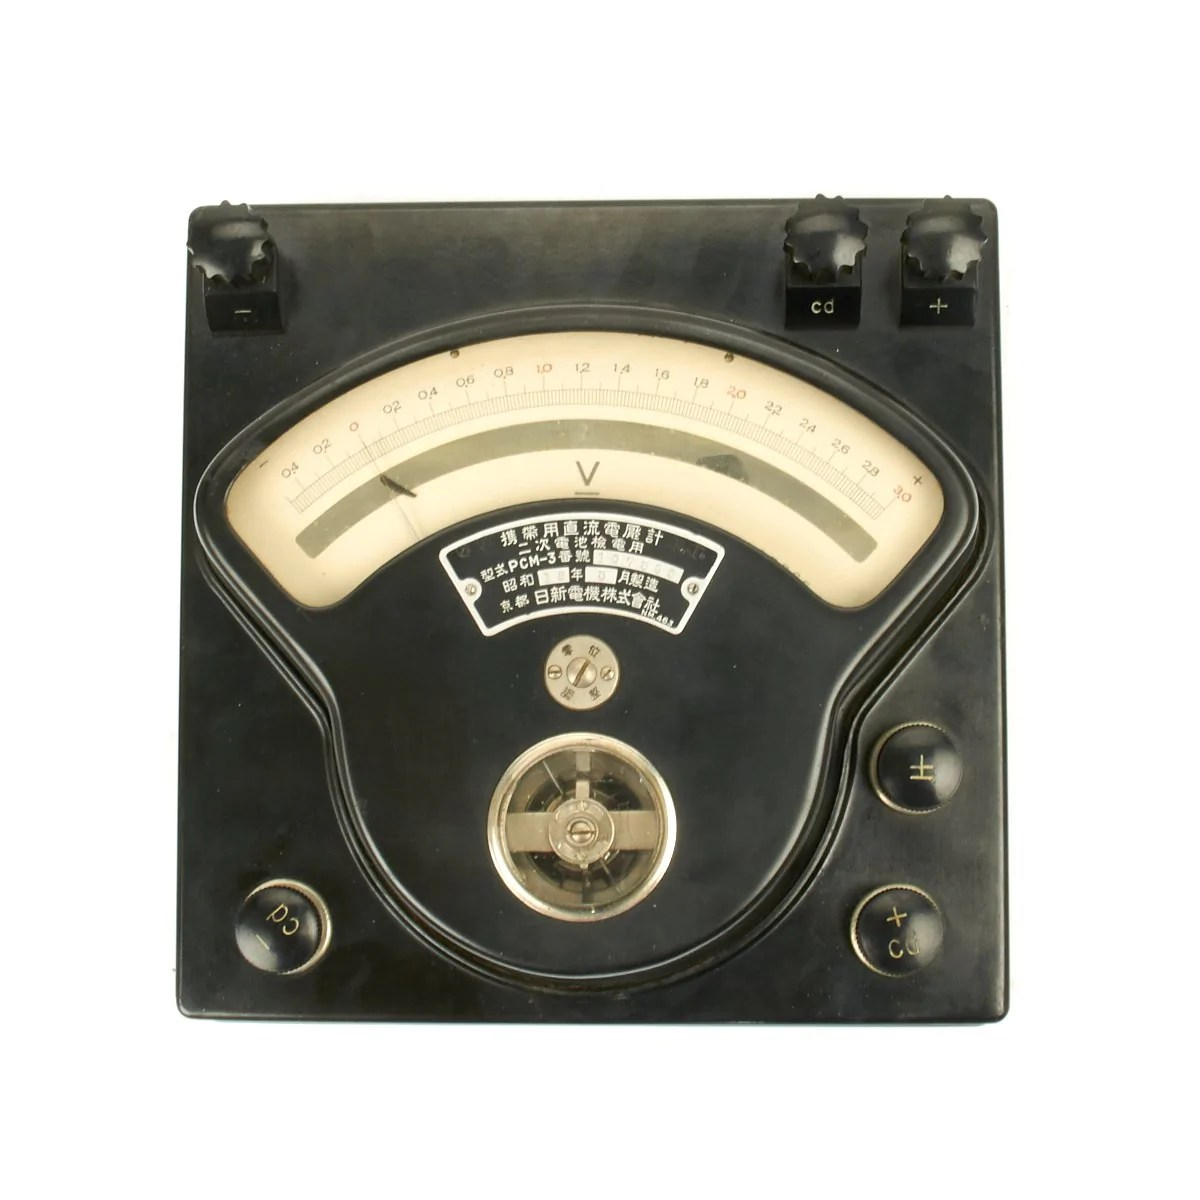 medium resolution of  original japanese wwii navy voltmeter with case with cords and on